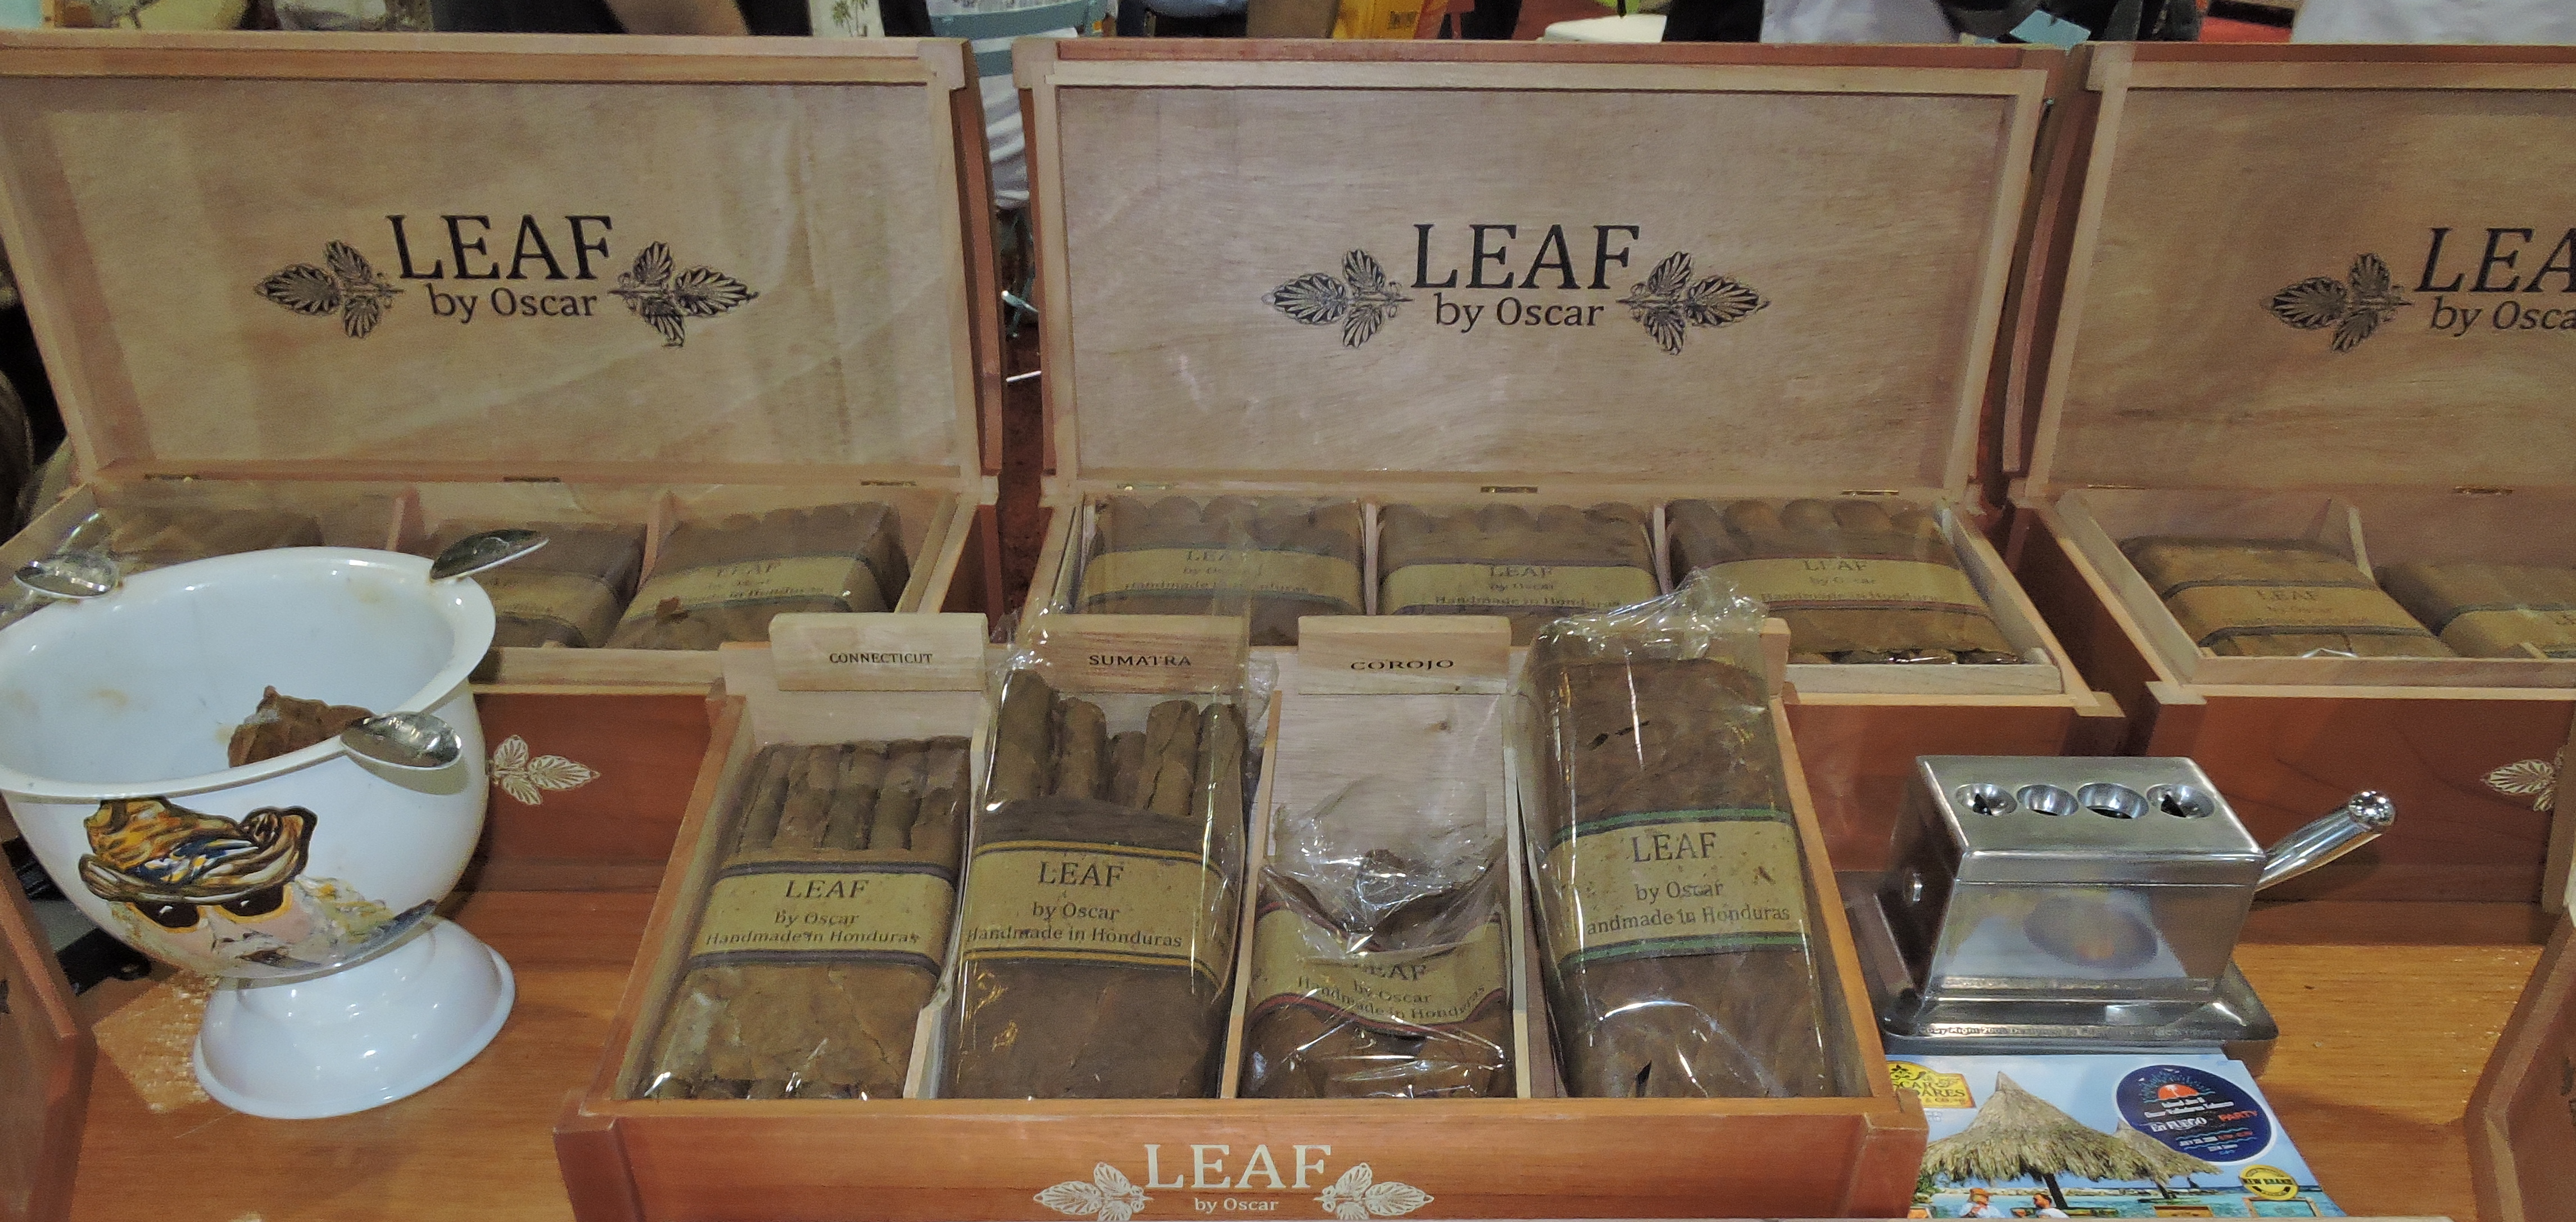 Cigar News: Leaf by Oscar Adds Robusto and Makes Lancero Regular Production Offering